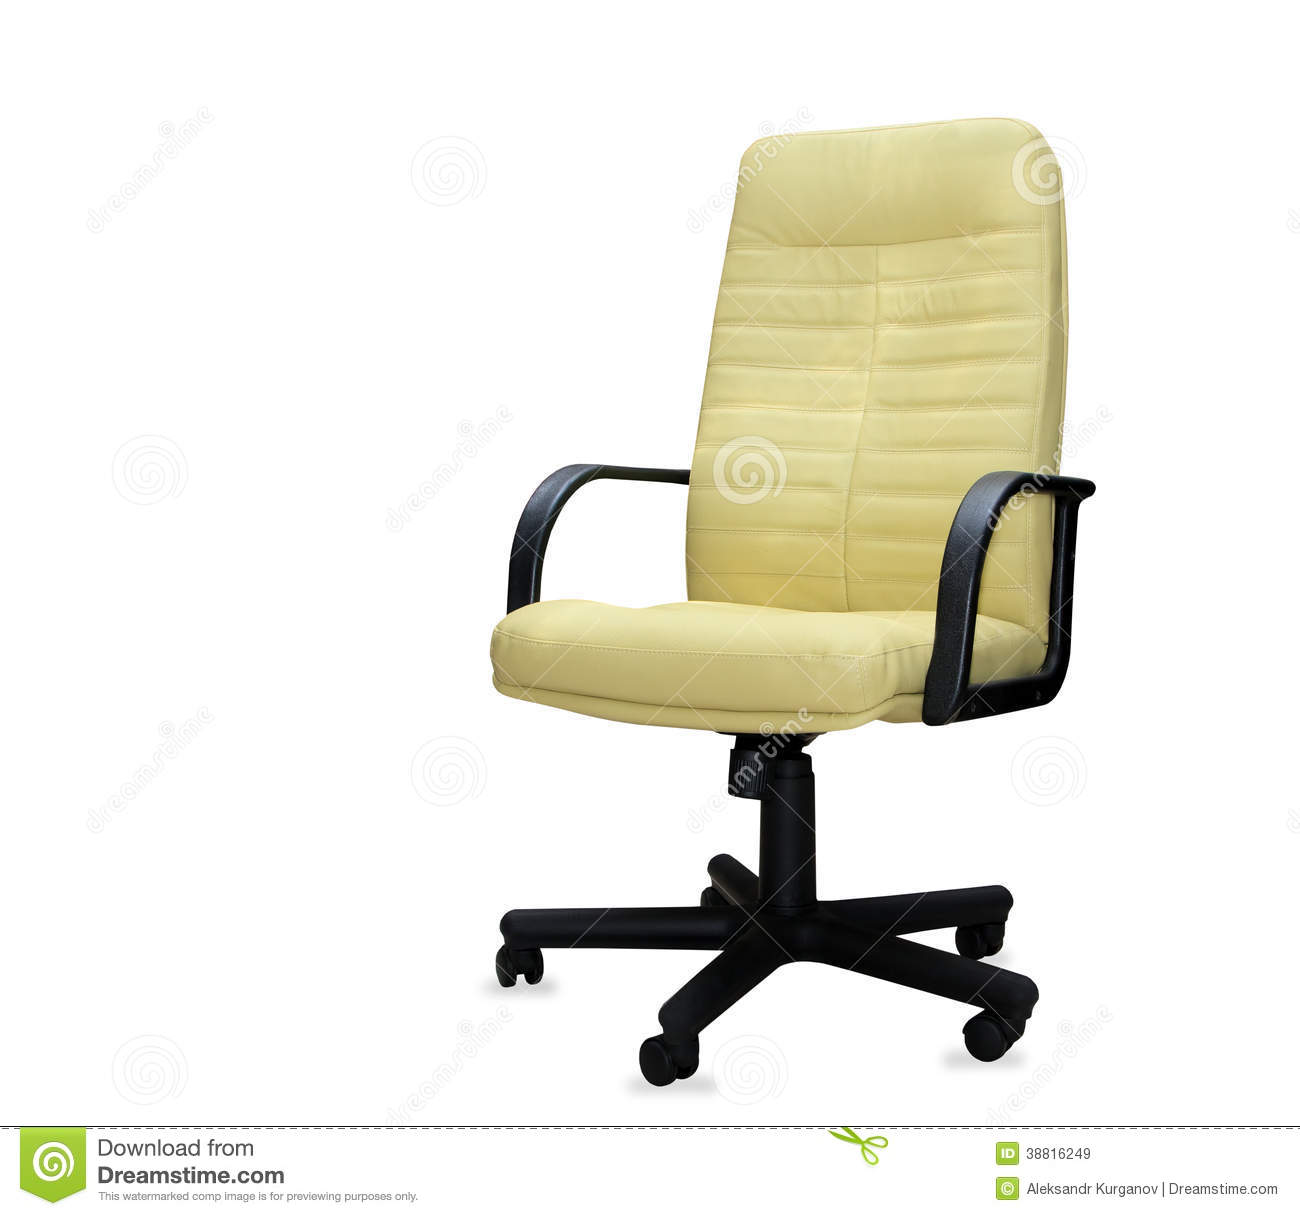 yellow office chair plastic cover patterns stock image cartoondealer 19776277